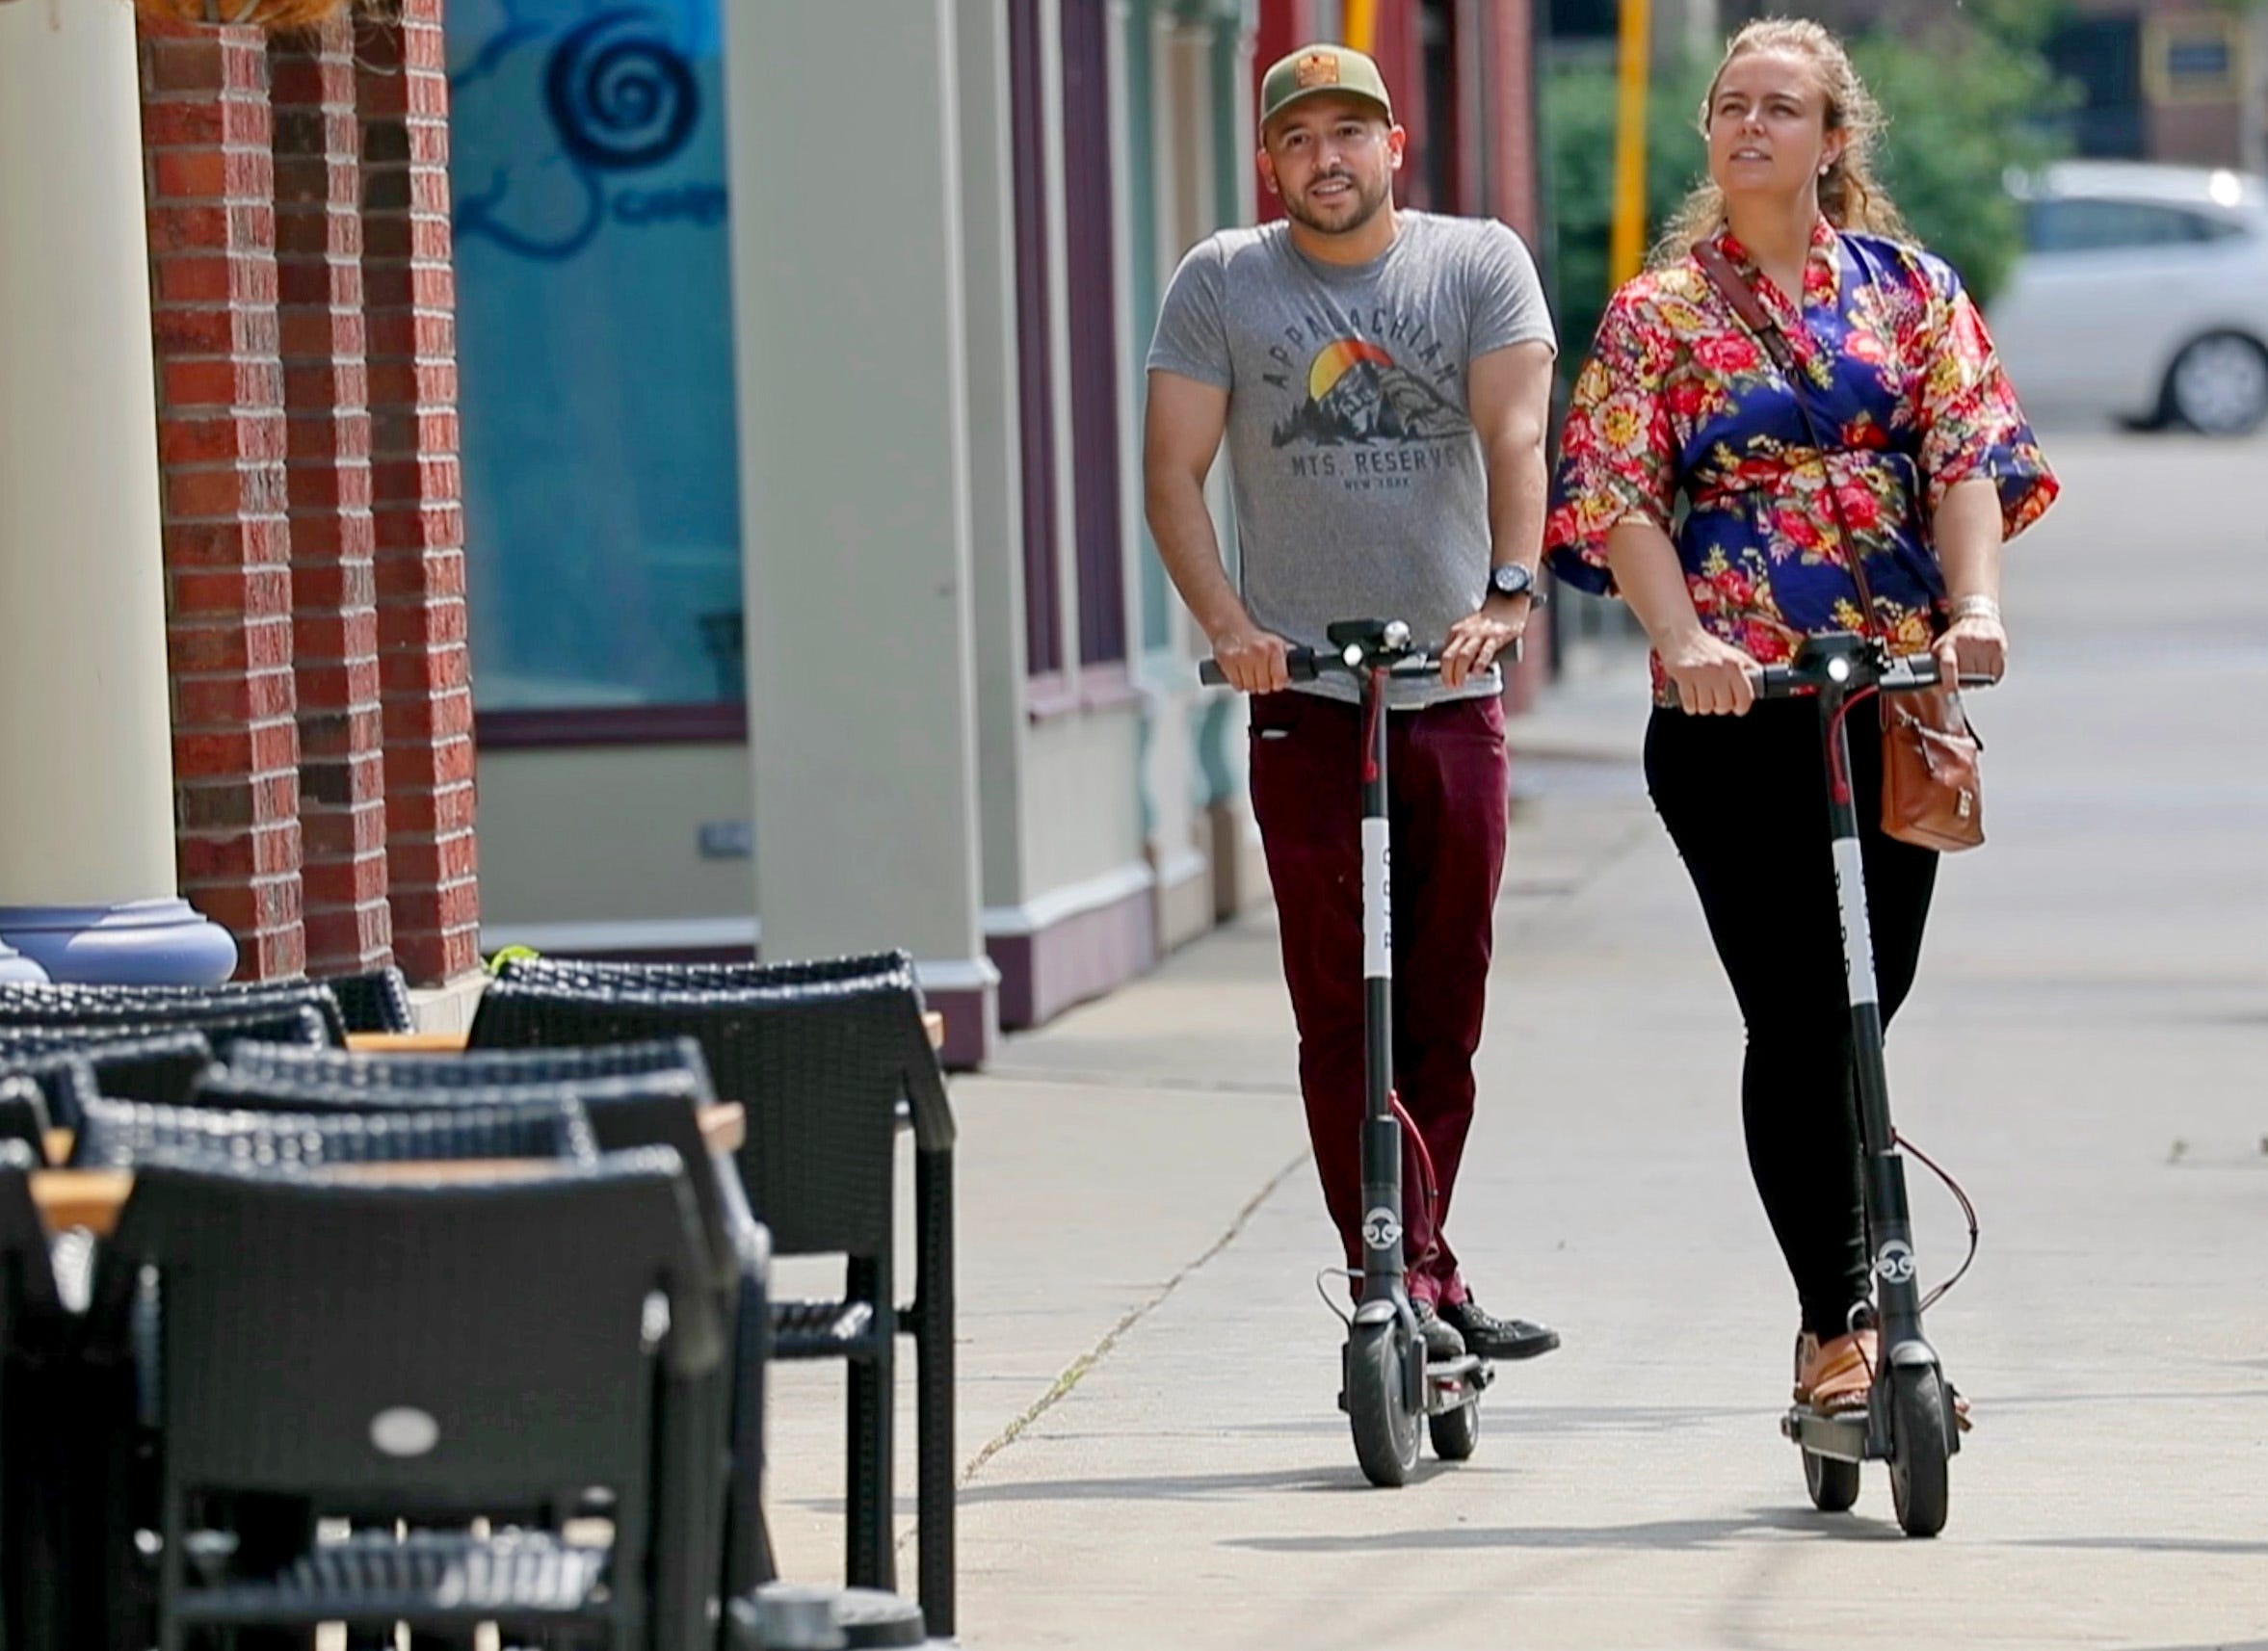 City leaders rip Bird, Council committee votes to remove illegal scooters from the street | Milwaukee Journal Sentinel